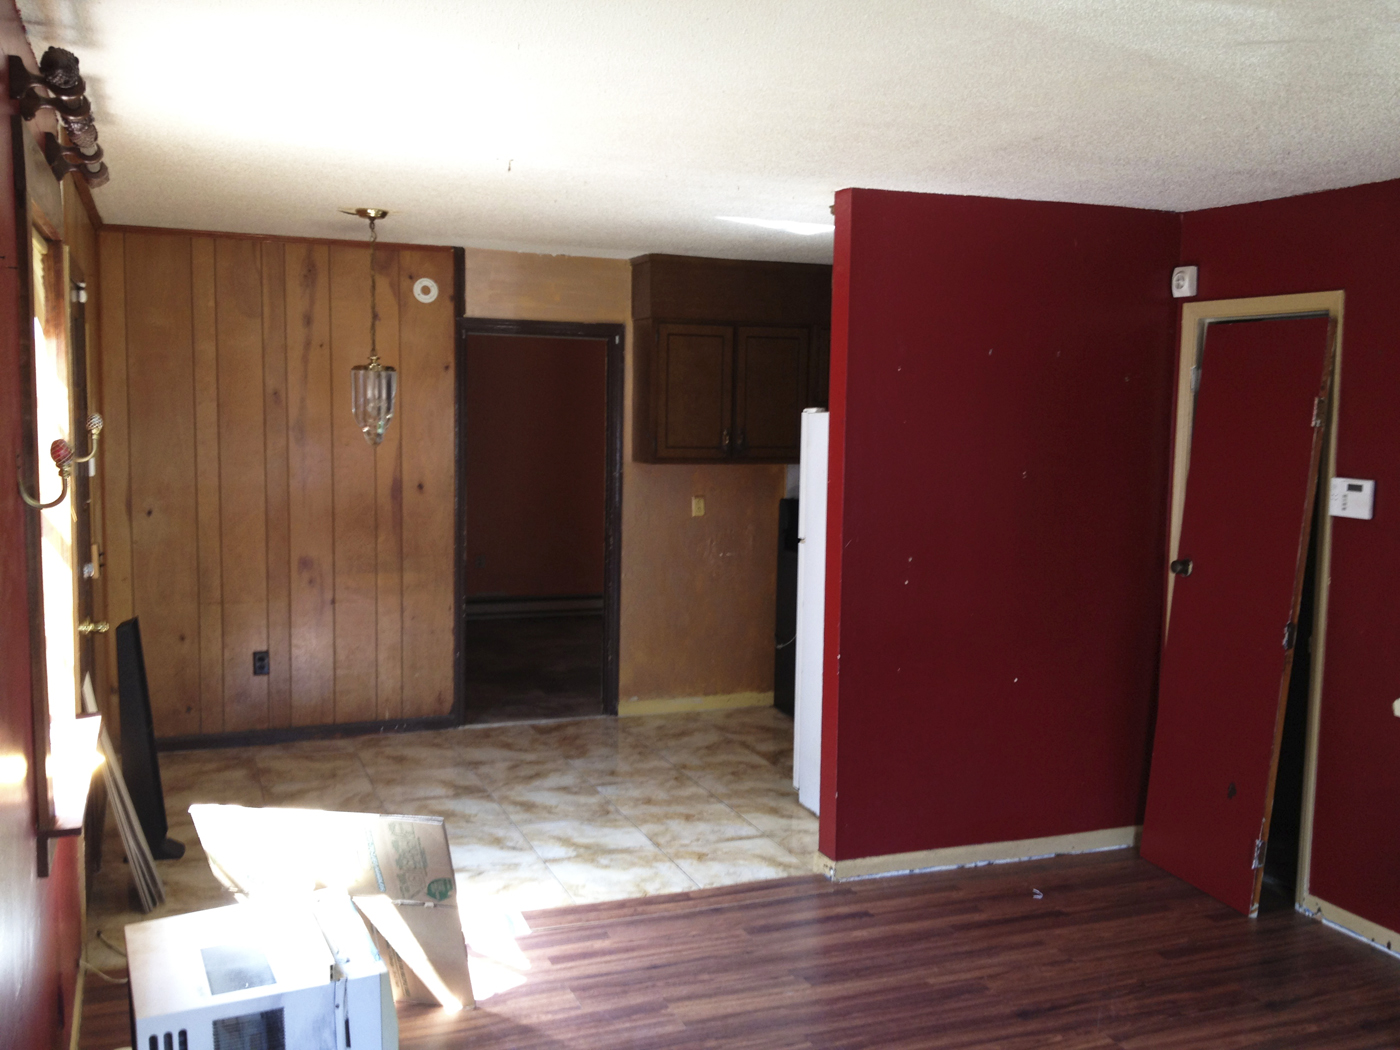 This is just bad, bad, bad, bad. The red paint, the tile and laminate floor,the wood paneling.......bad-ass light fixture though. The tiny kitchen was tucked behind that red wall.